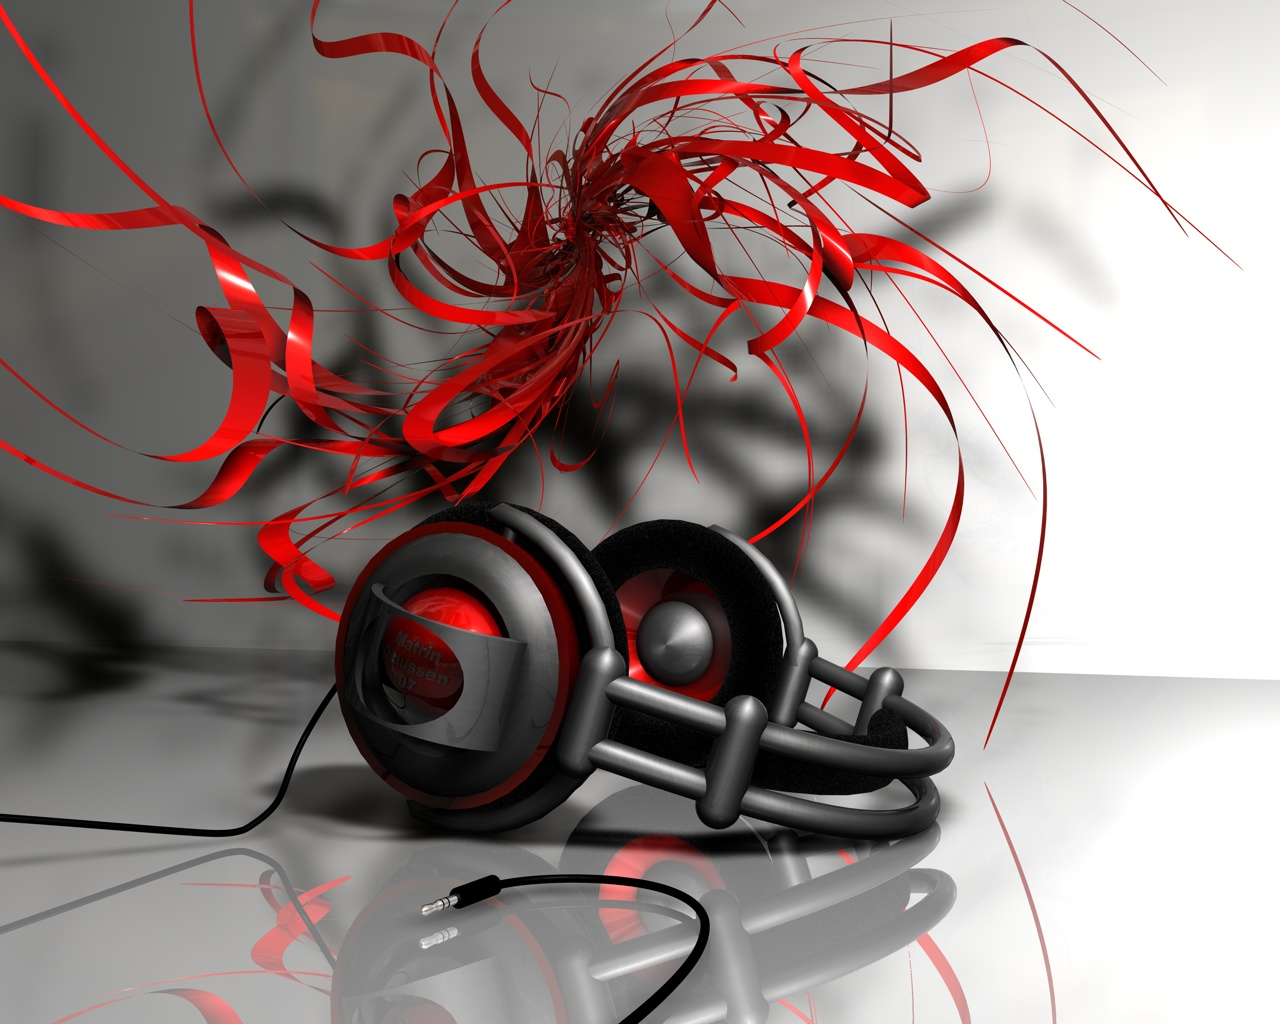 Headphones HD Music Wallpapers Backgrounds